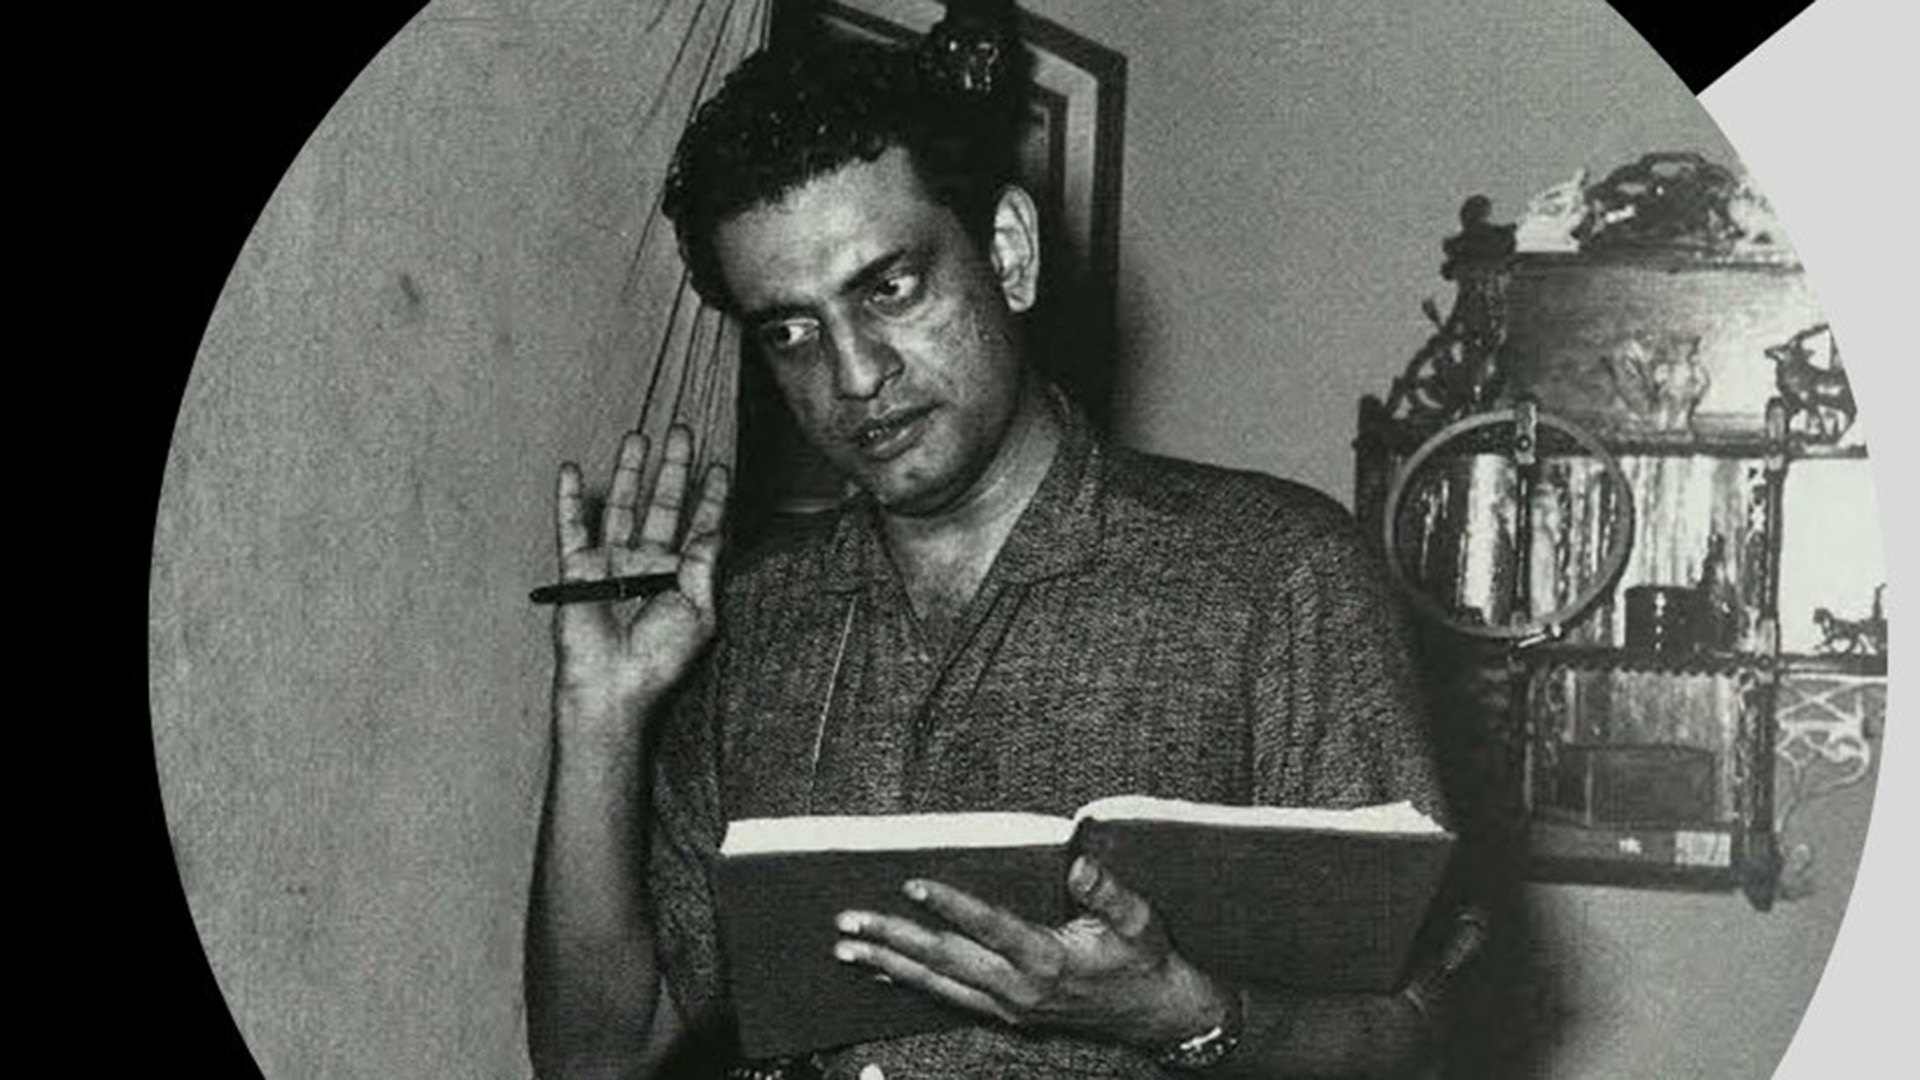 'The Alien' Who Inspired Hollywood: India Gears Up To Celebrate Filmmaker Satyajit Ray